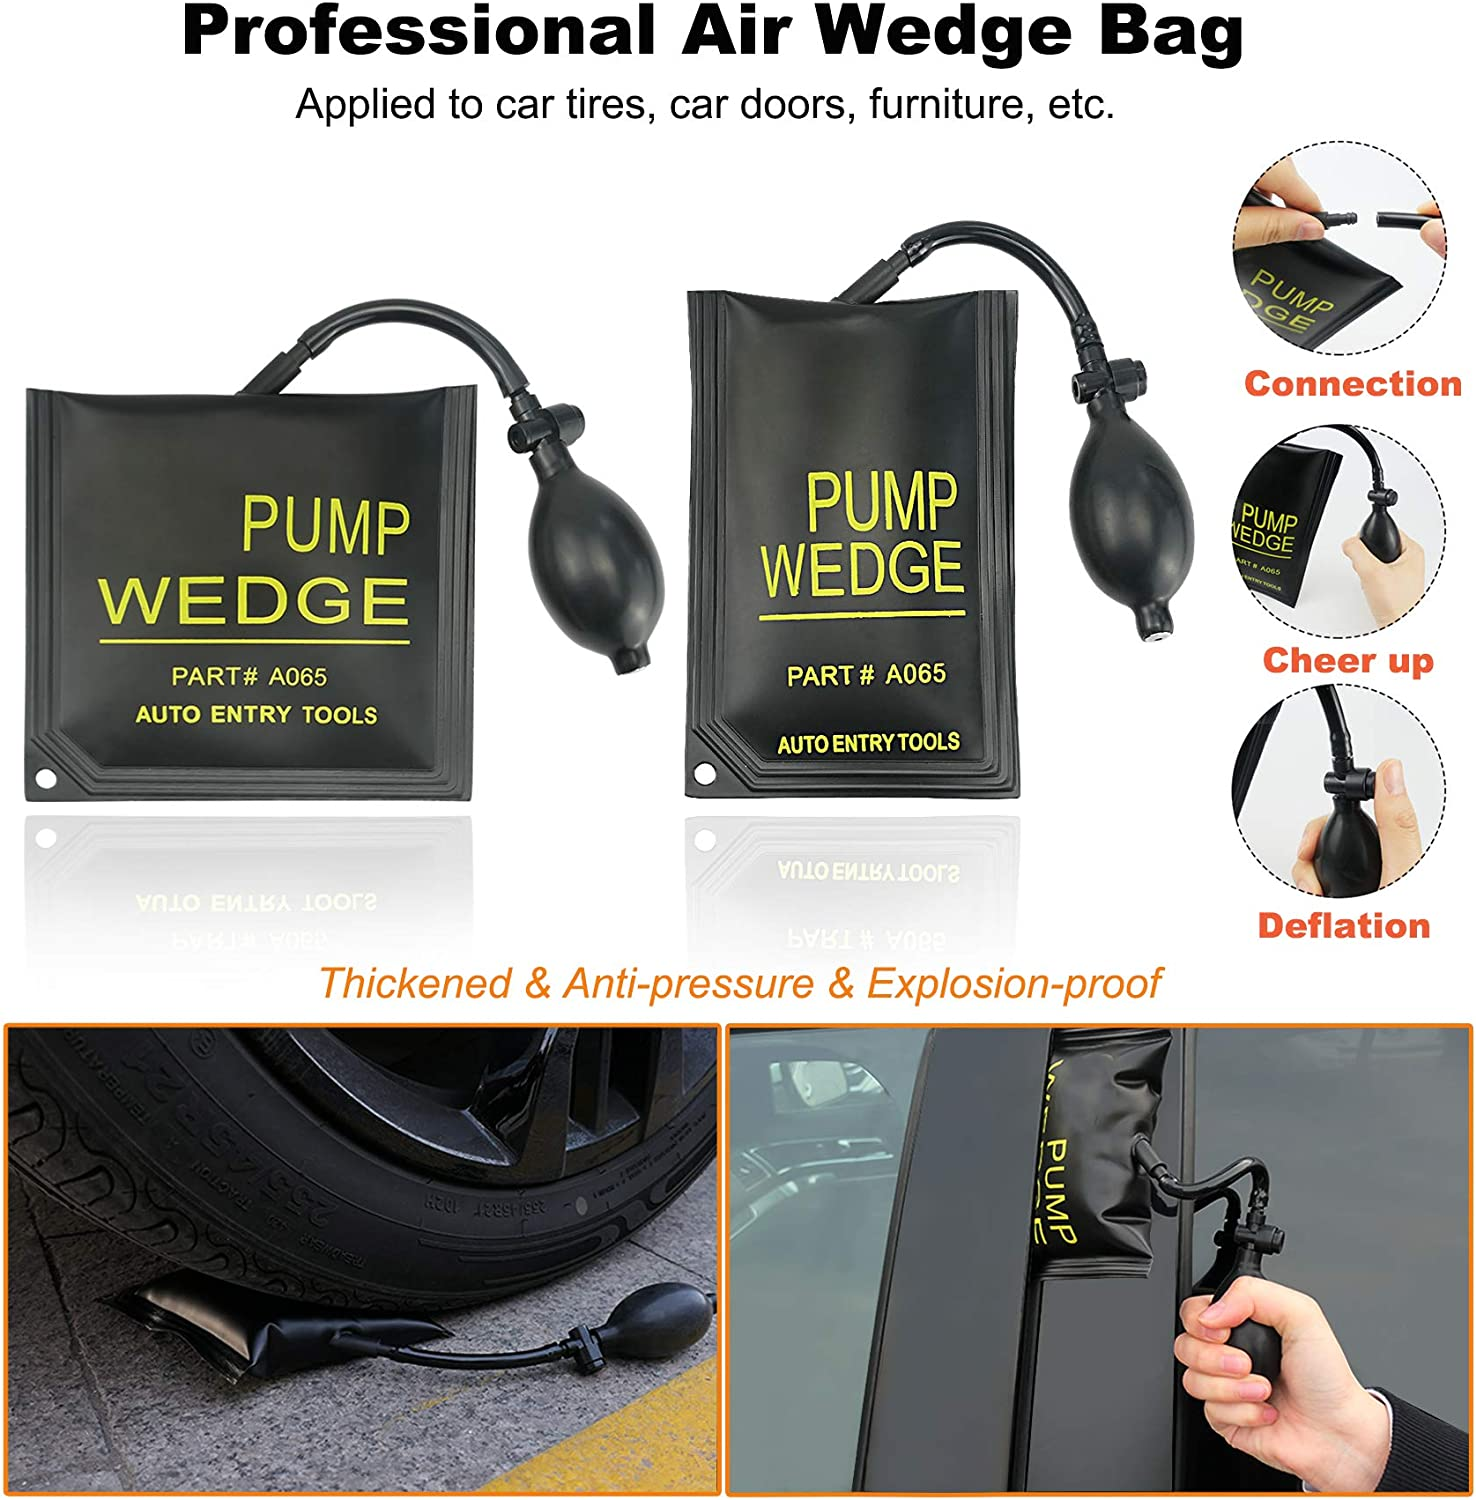 Car Lockout Kit with Air Wedge Pump Non Marring Wedge Qnbes 13Pcs Professional Car Tool Kit Easy Entry Long Reach Grabber Pulling Cable and Carrying Storage Bag